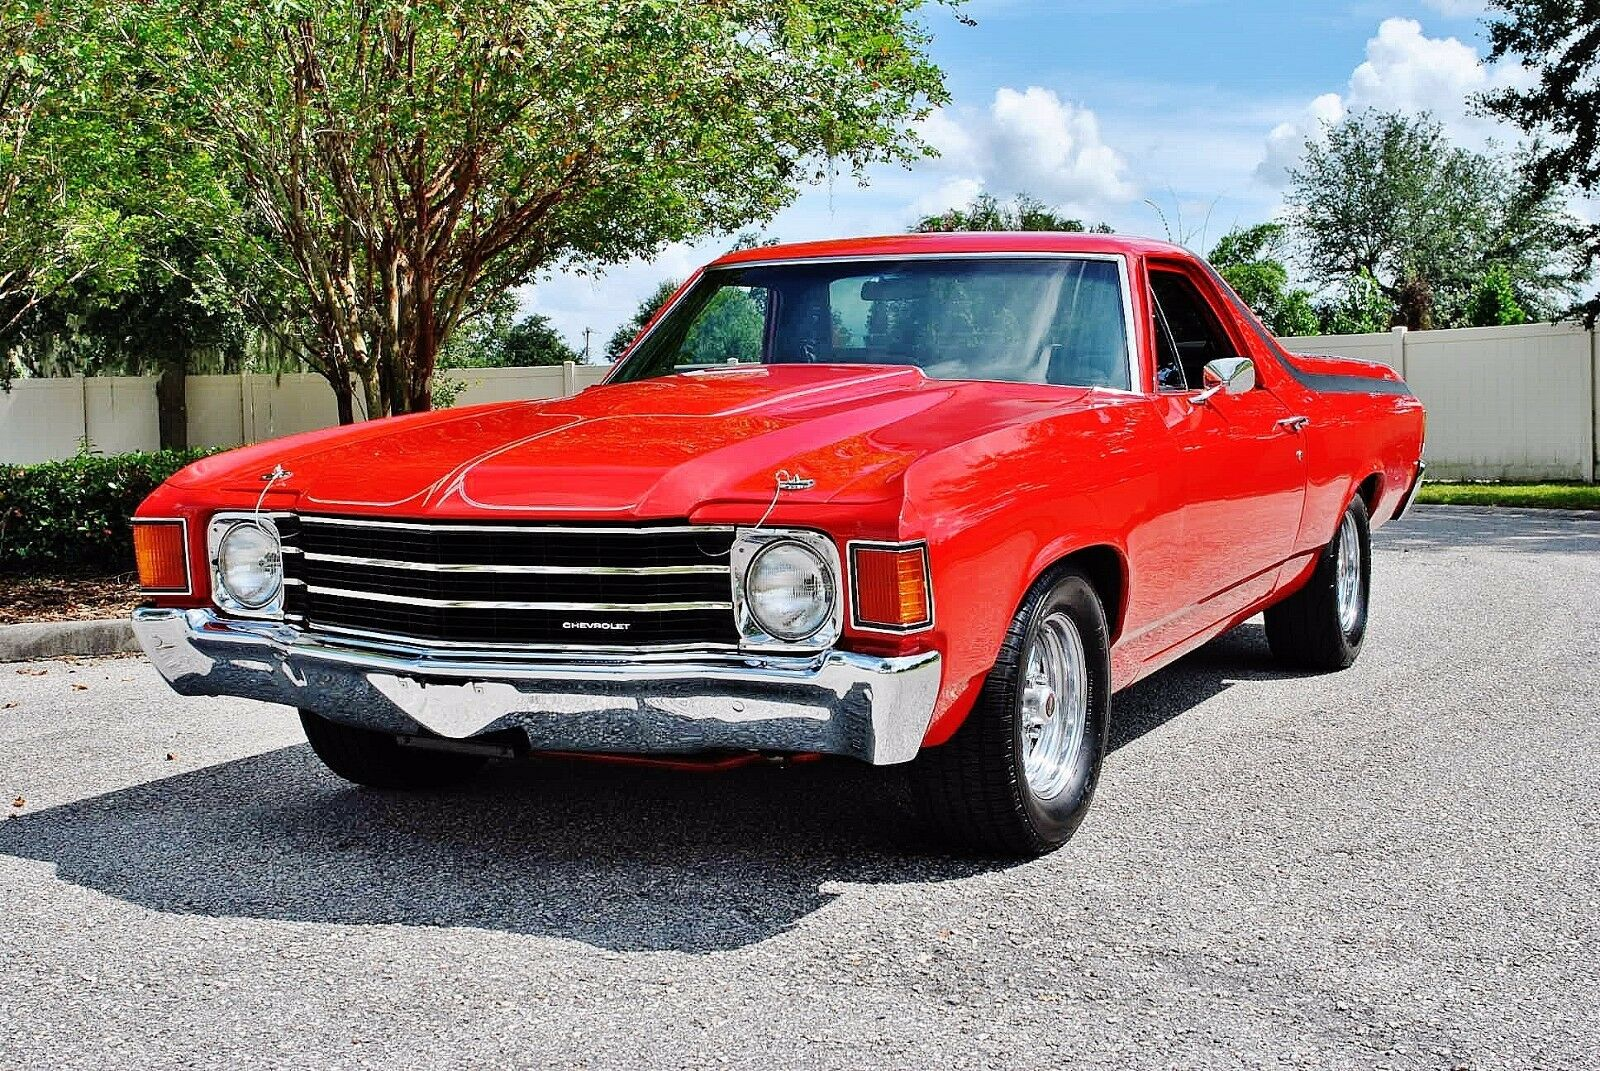 1972 Chevrolet El Camino Fully Restored Must See Houndstooth Interior Auto Power Steering Power Front Disc Brakes Suspension Upgrades  nice driver !